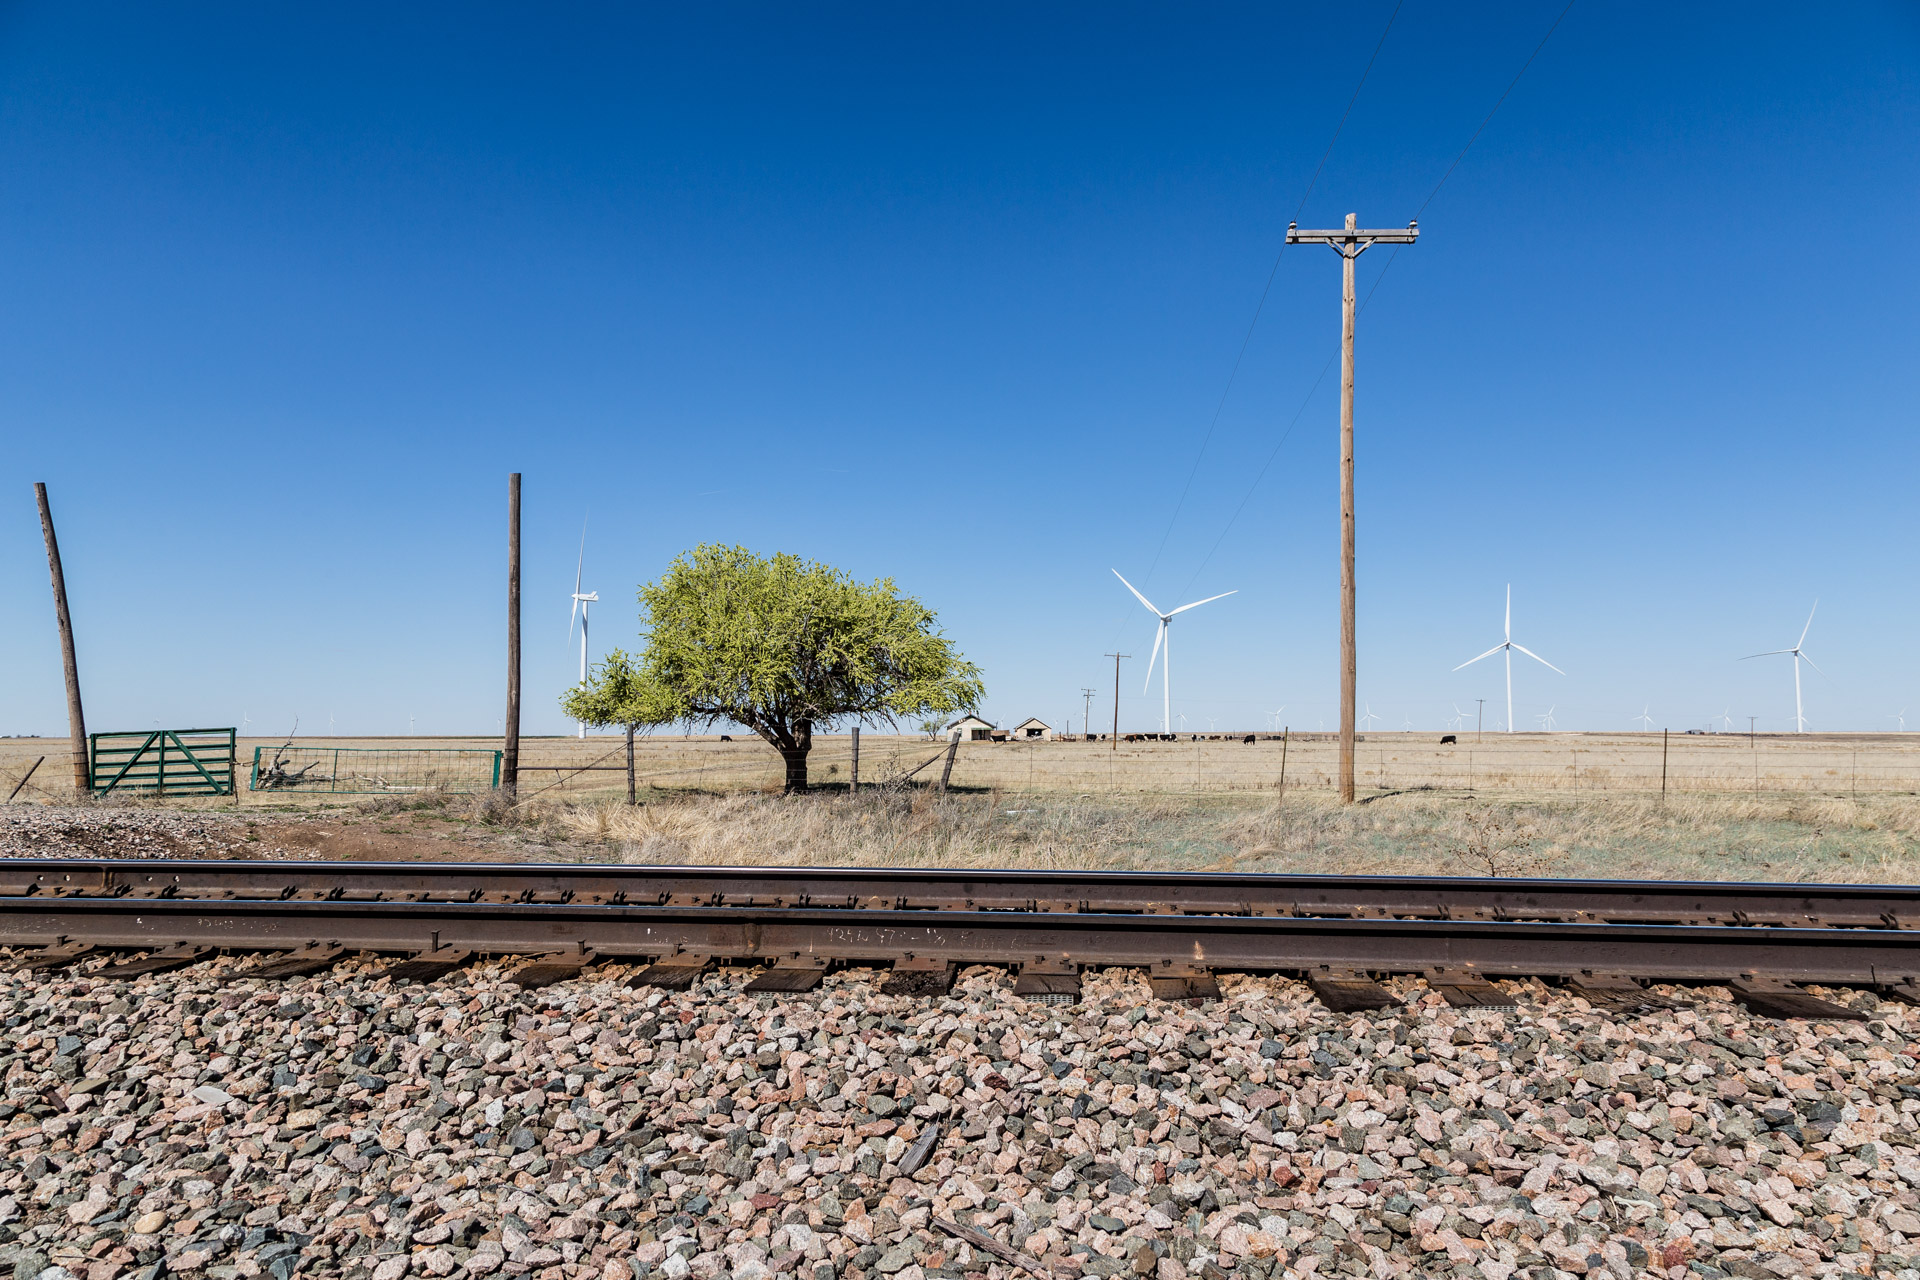 Railroad Tracks and Wind Turbines (far tracks 1)